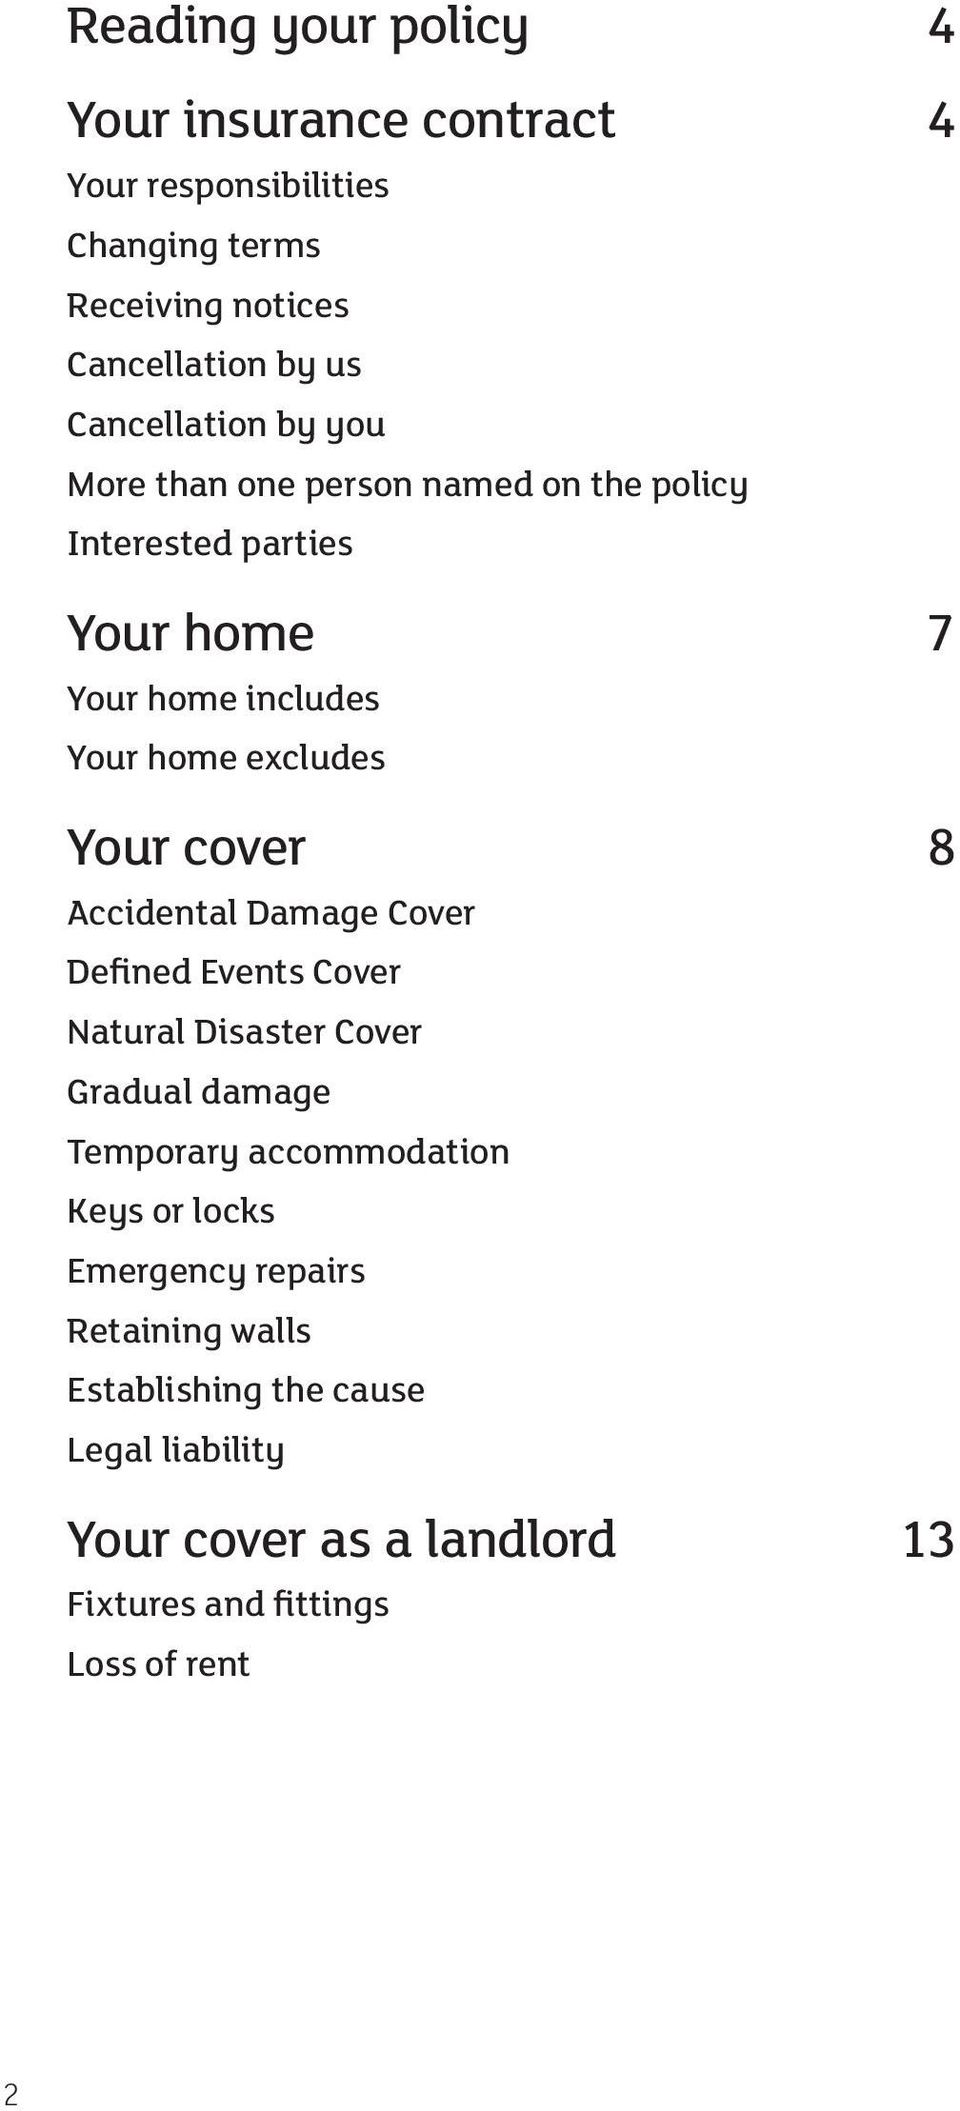 Your cover 8 Accidental Damage Cover Defined Events Cover Natural Disaster Cover Gradual damage Temporary accommodation Keys or